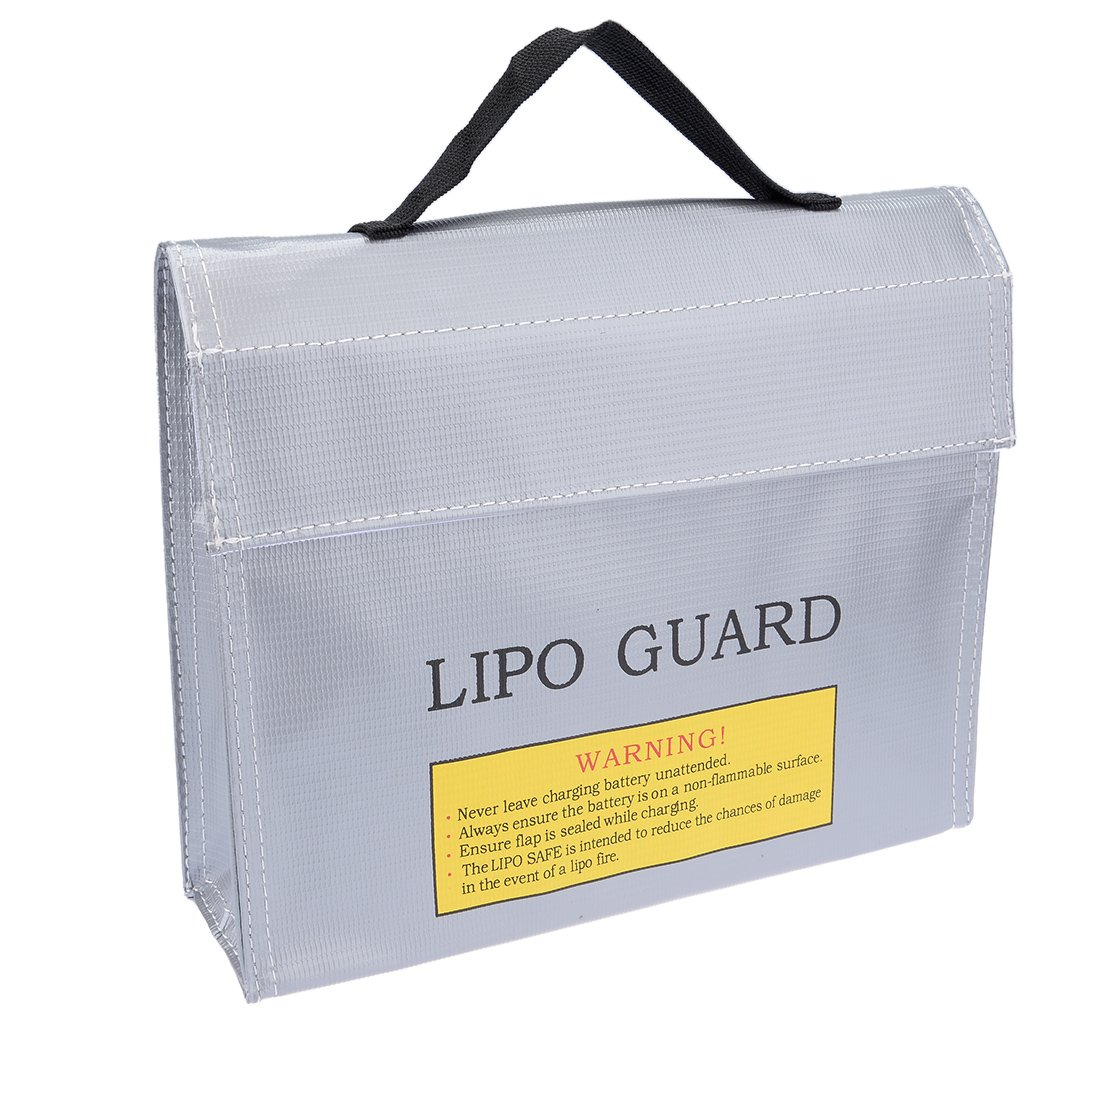 uxcell Fireproof RC Lipo Battery Storage Charging Safe Bag Pouch Sack Lipo Battery Guard 215mm x 45mm x 165mm Large Silver